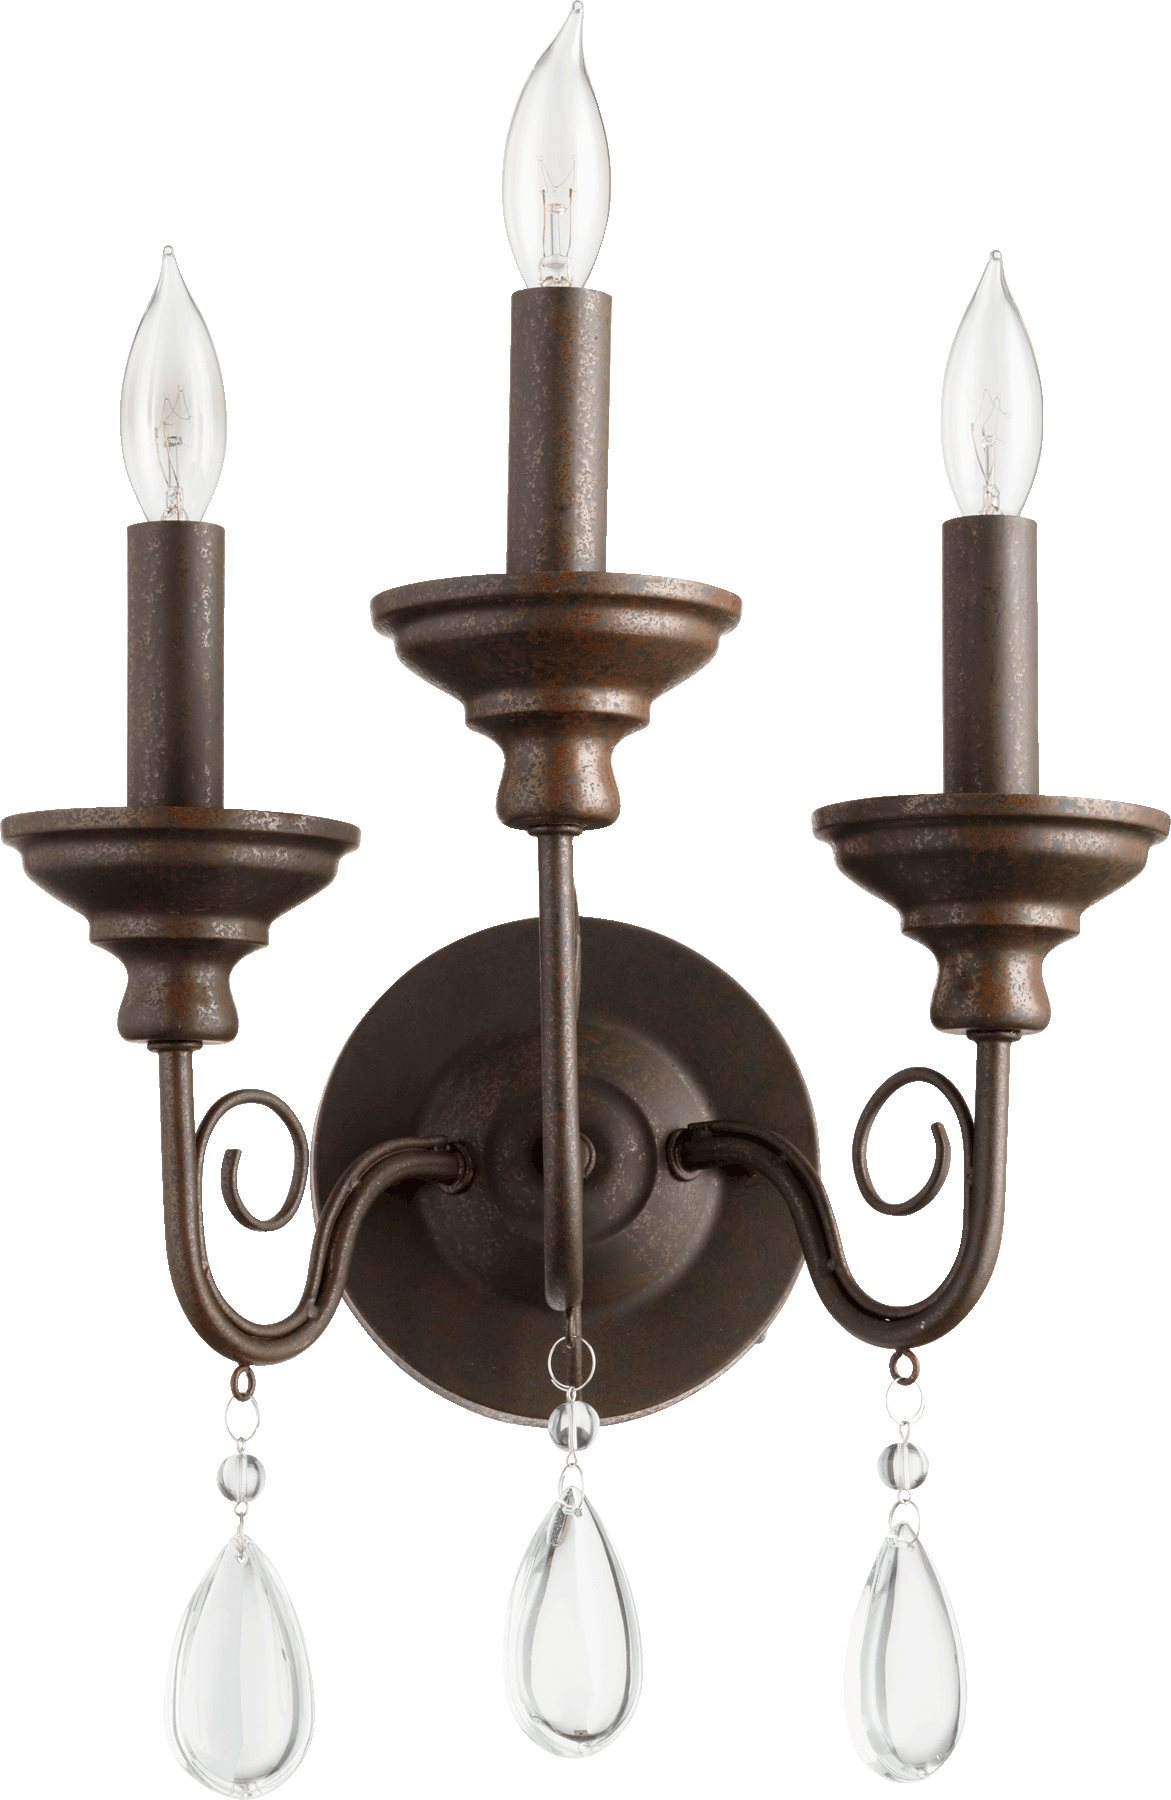 Quorum Lighting 5501-3-86 Vesta Traditional Wall Sconce QR-5501-3-86